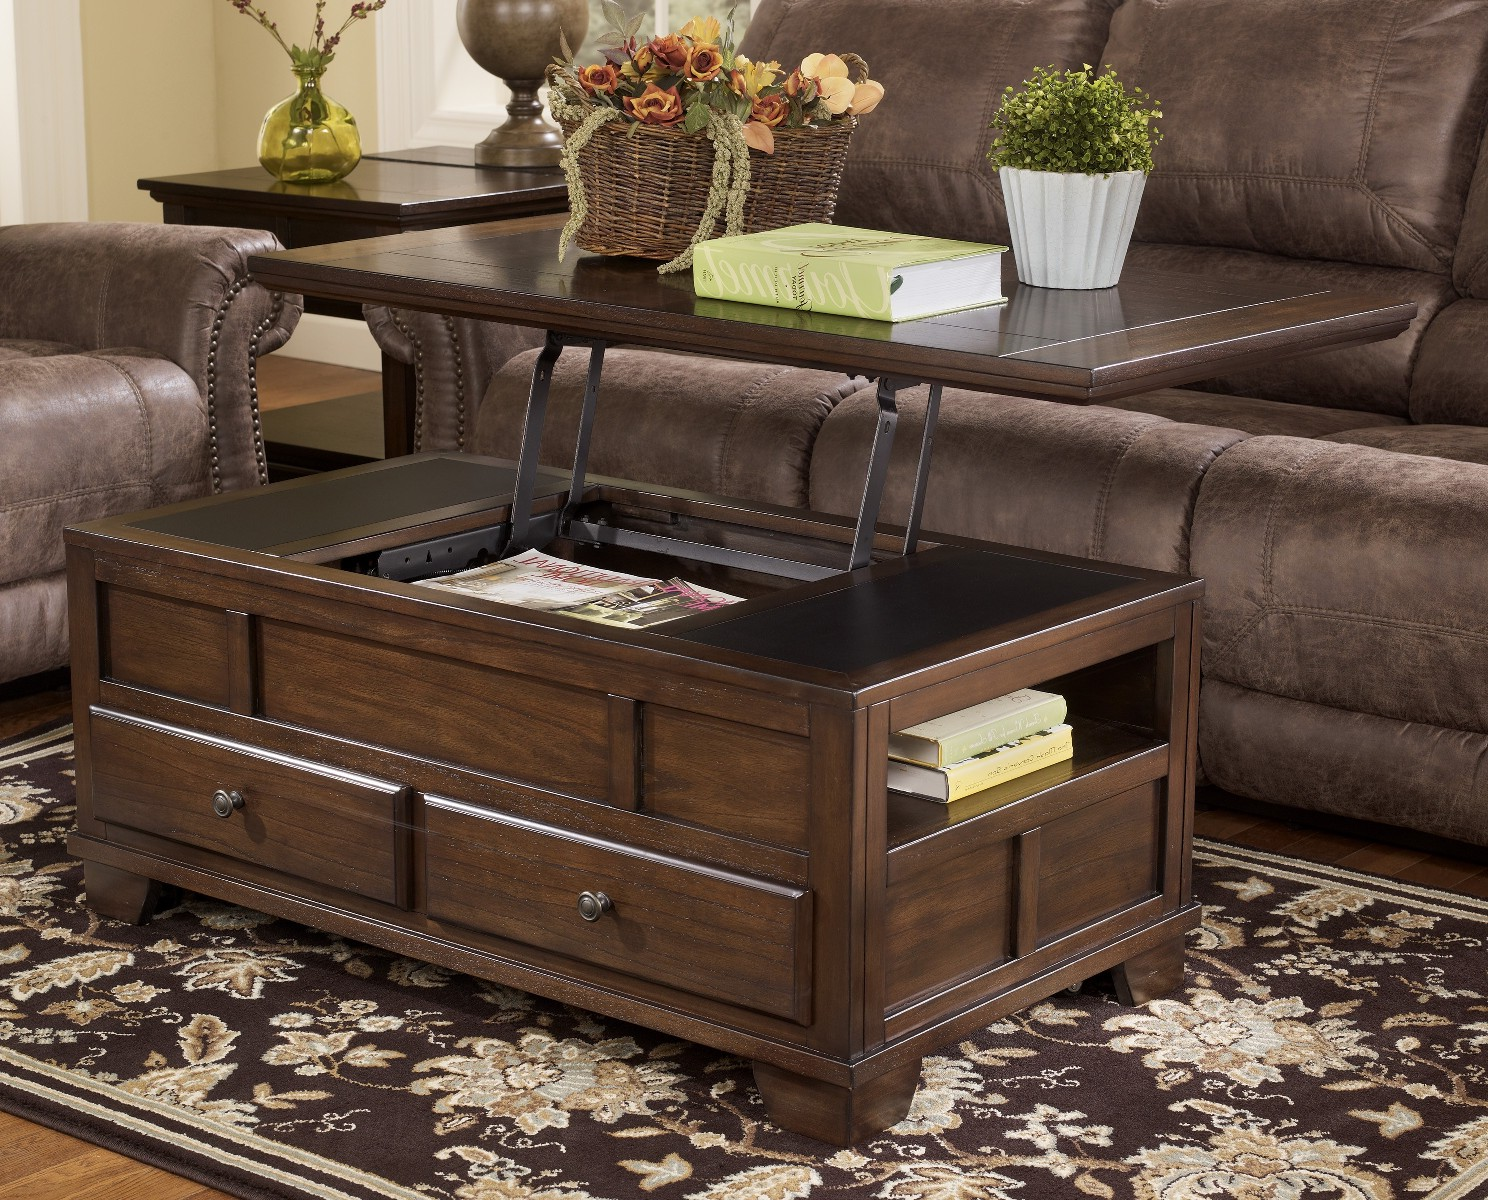 best wood for coffee table top design